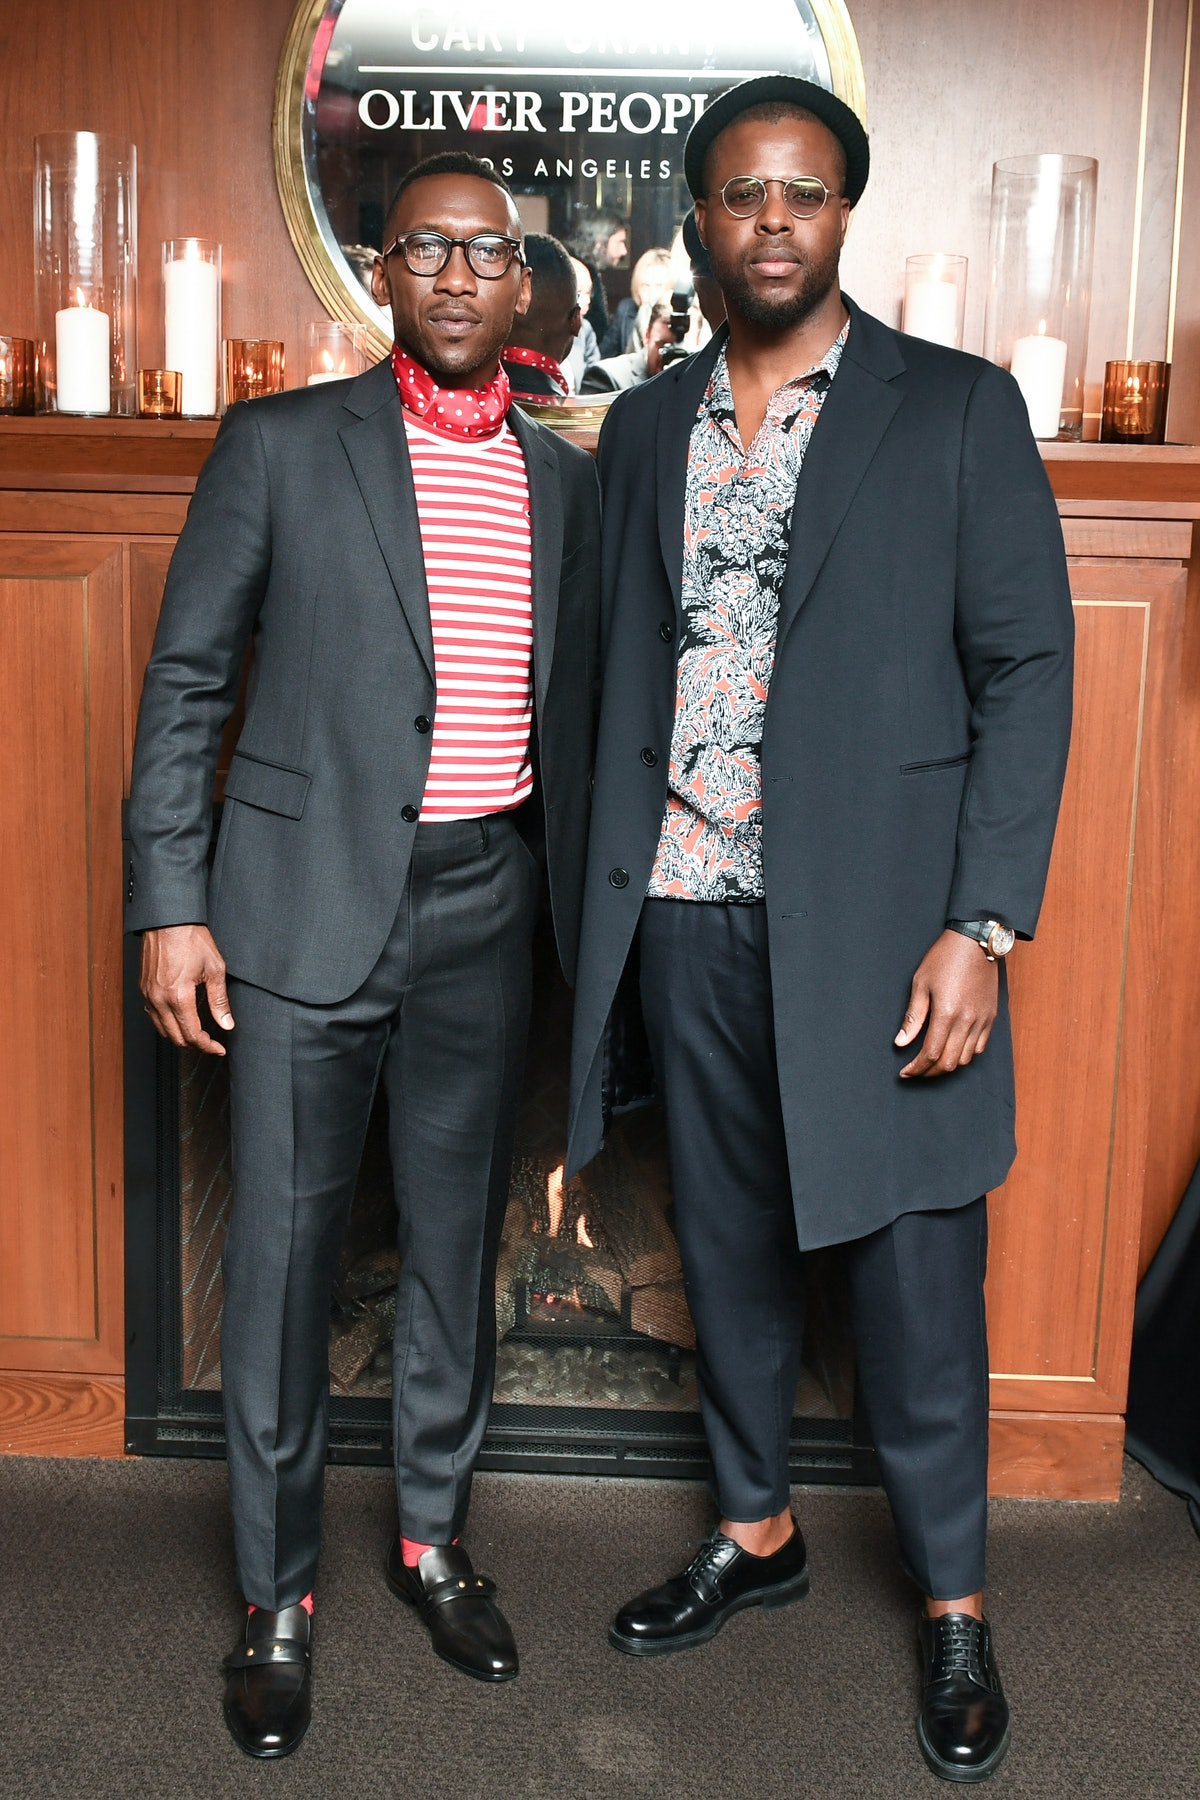 Oliver Peoples, Mahershala Ali and the Grant Family: Celebrate Oliver Peoples x Cary Grant Collabora...